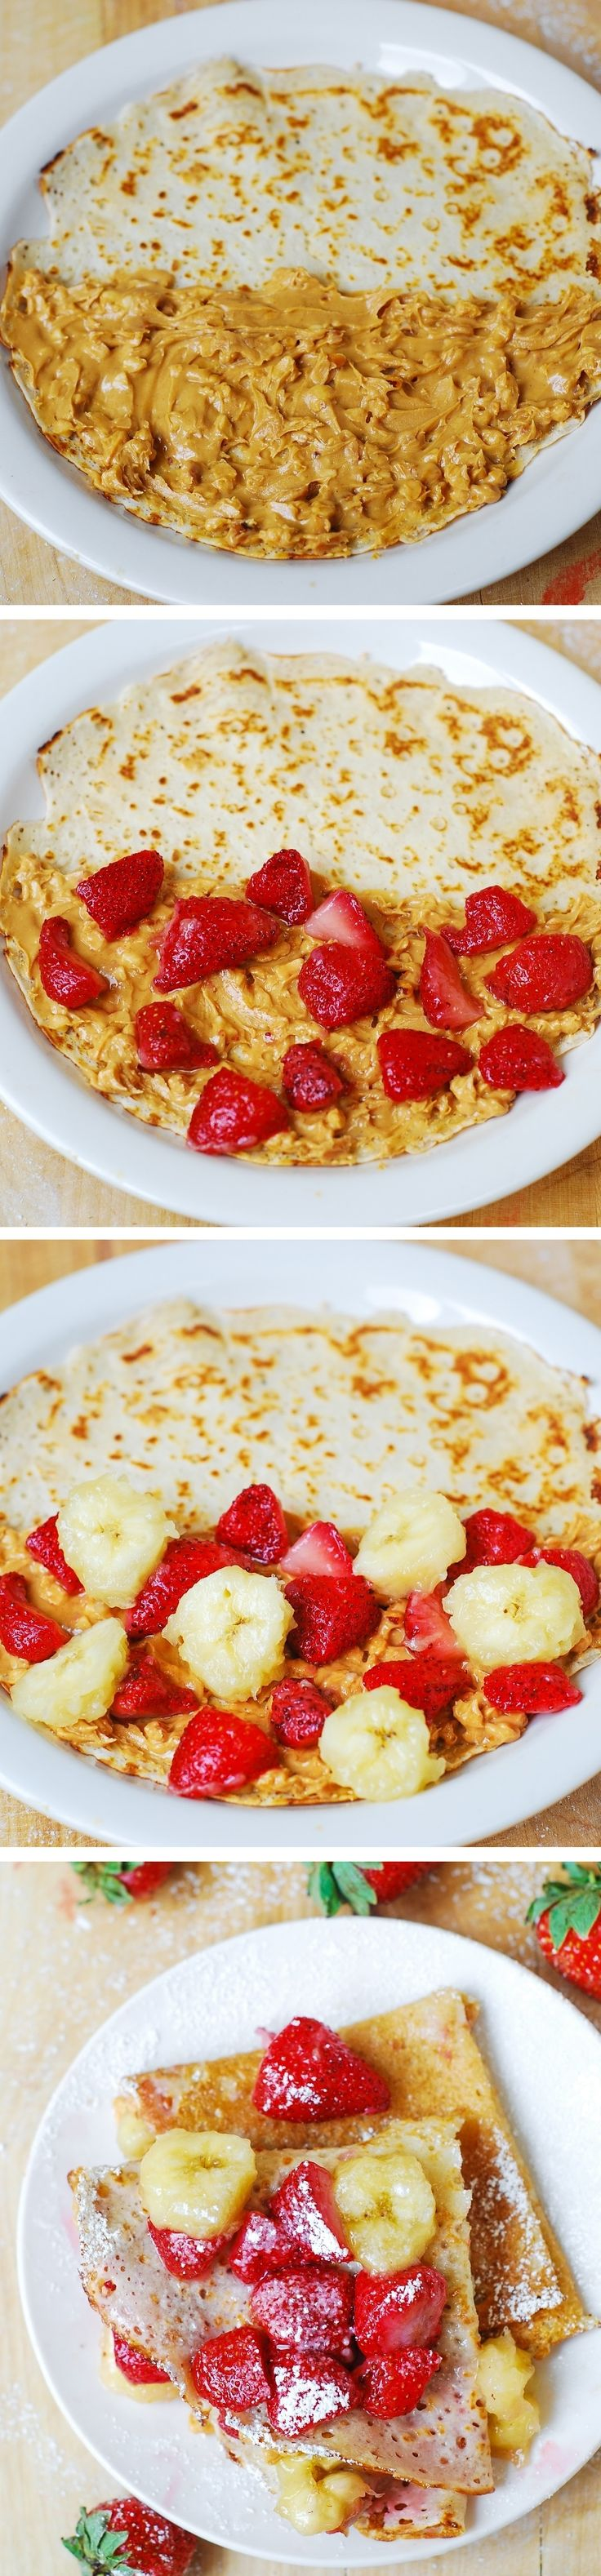 Crepes filled with strawberries, bananas, and peanut butter. Delicious ...